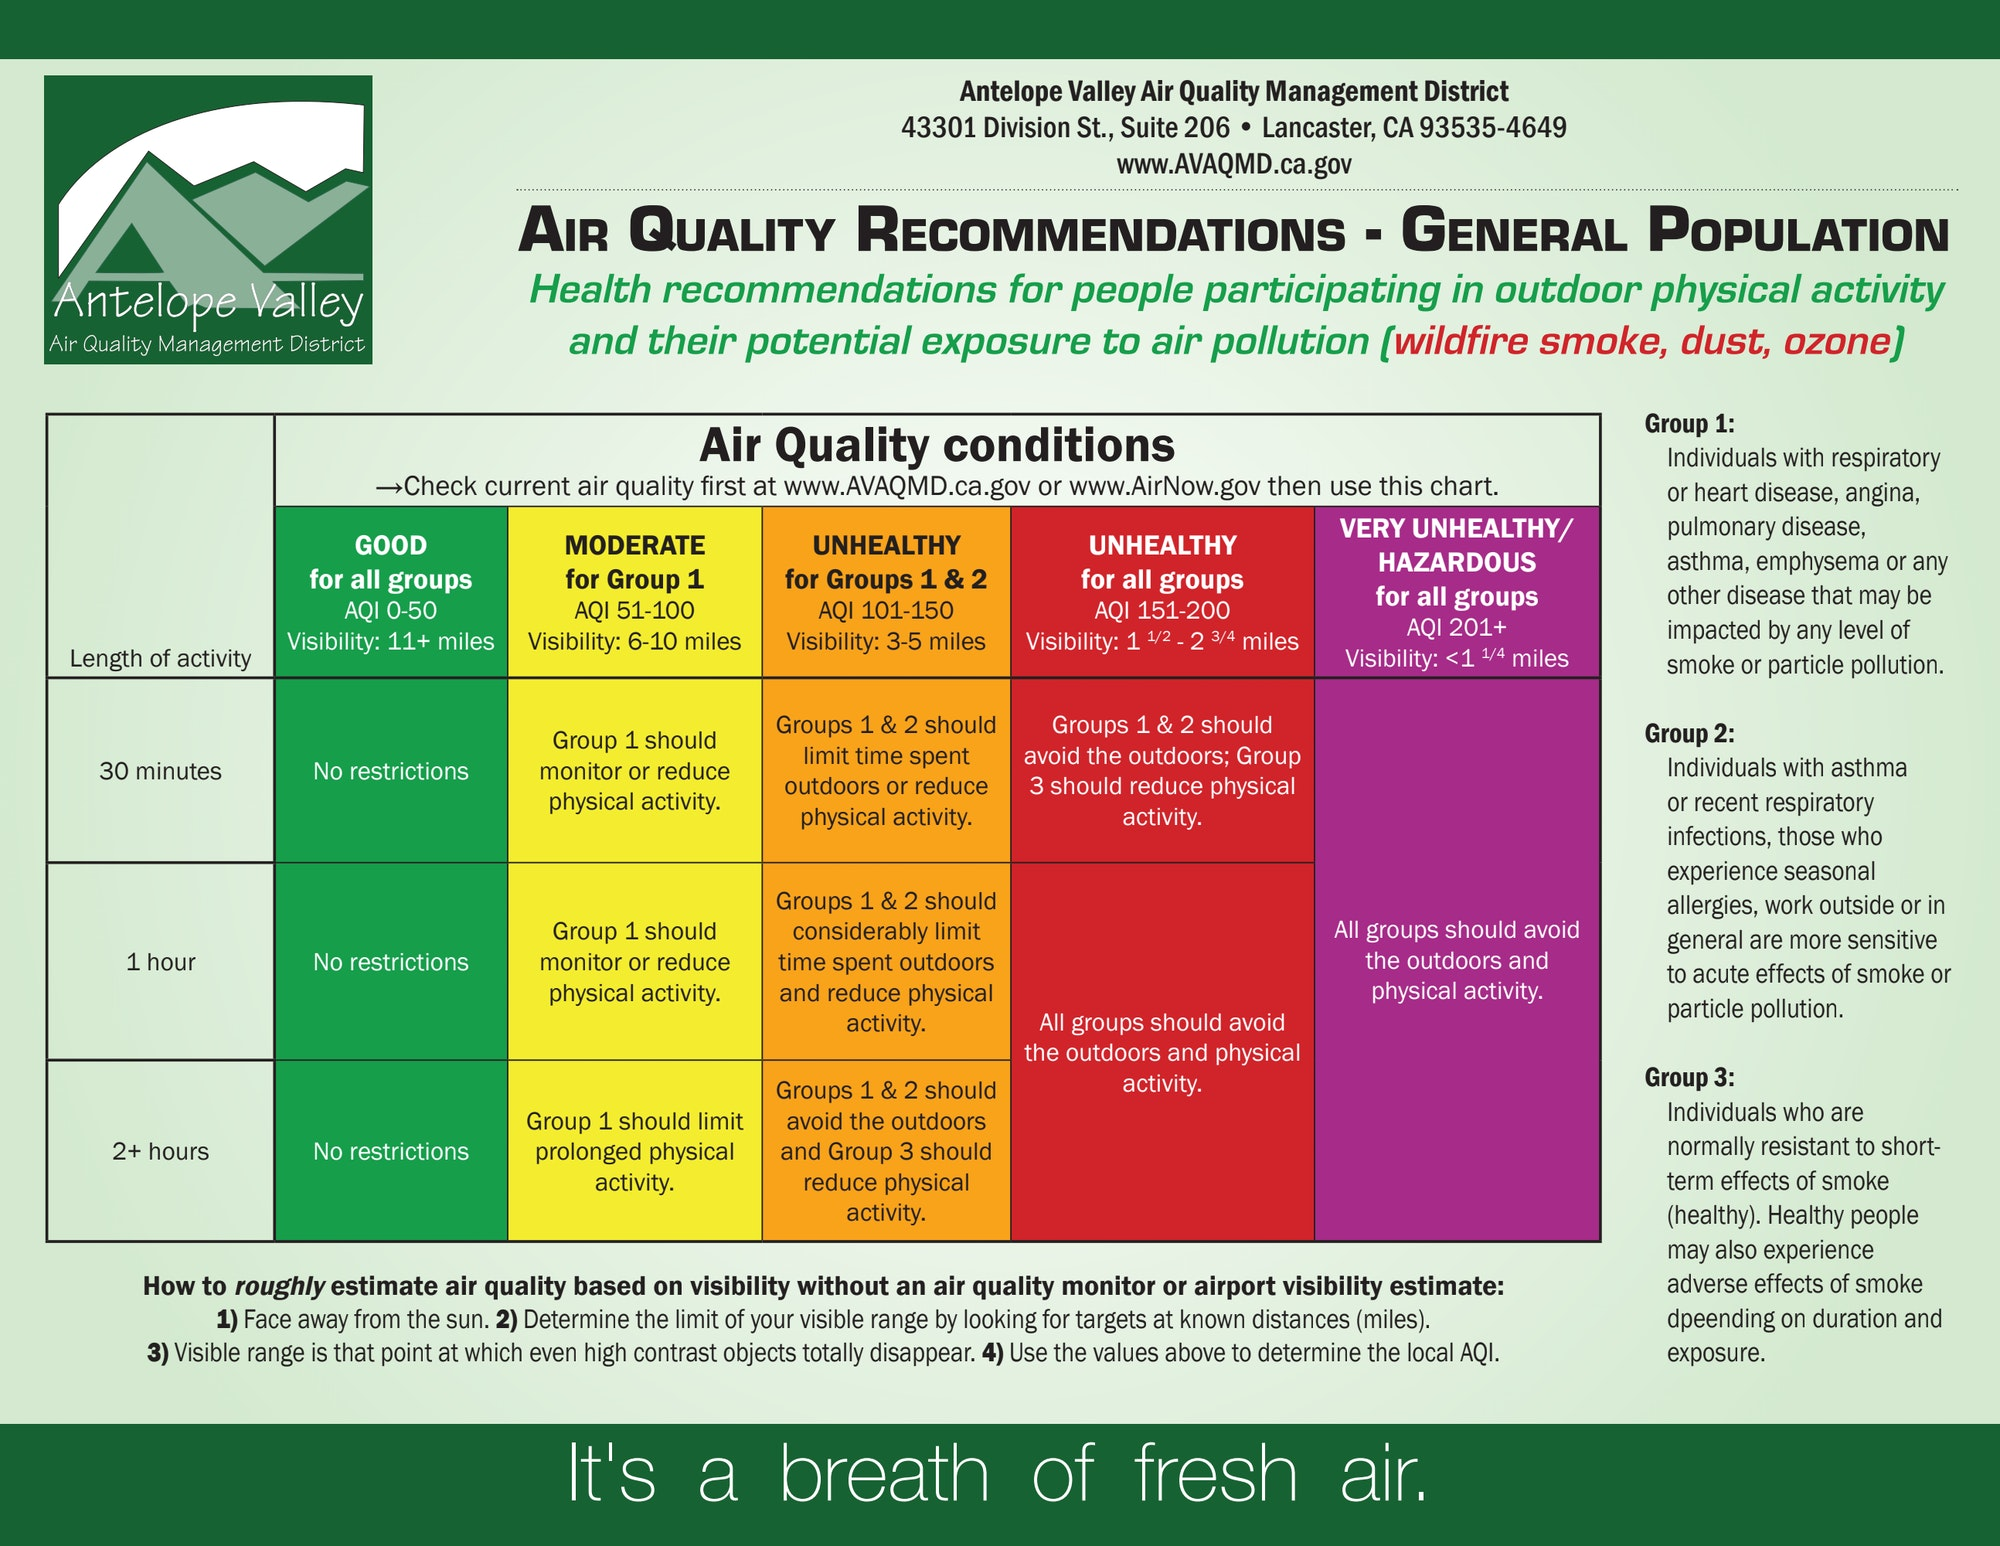 Air Quality Recommendation - General Population